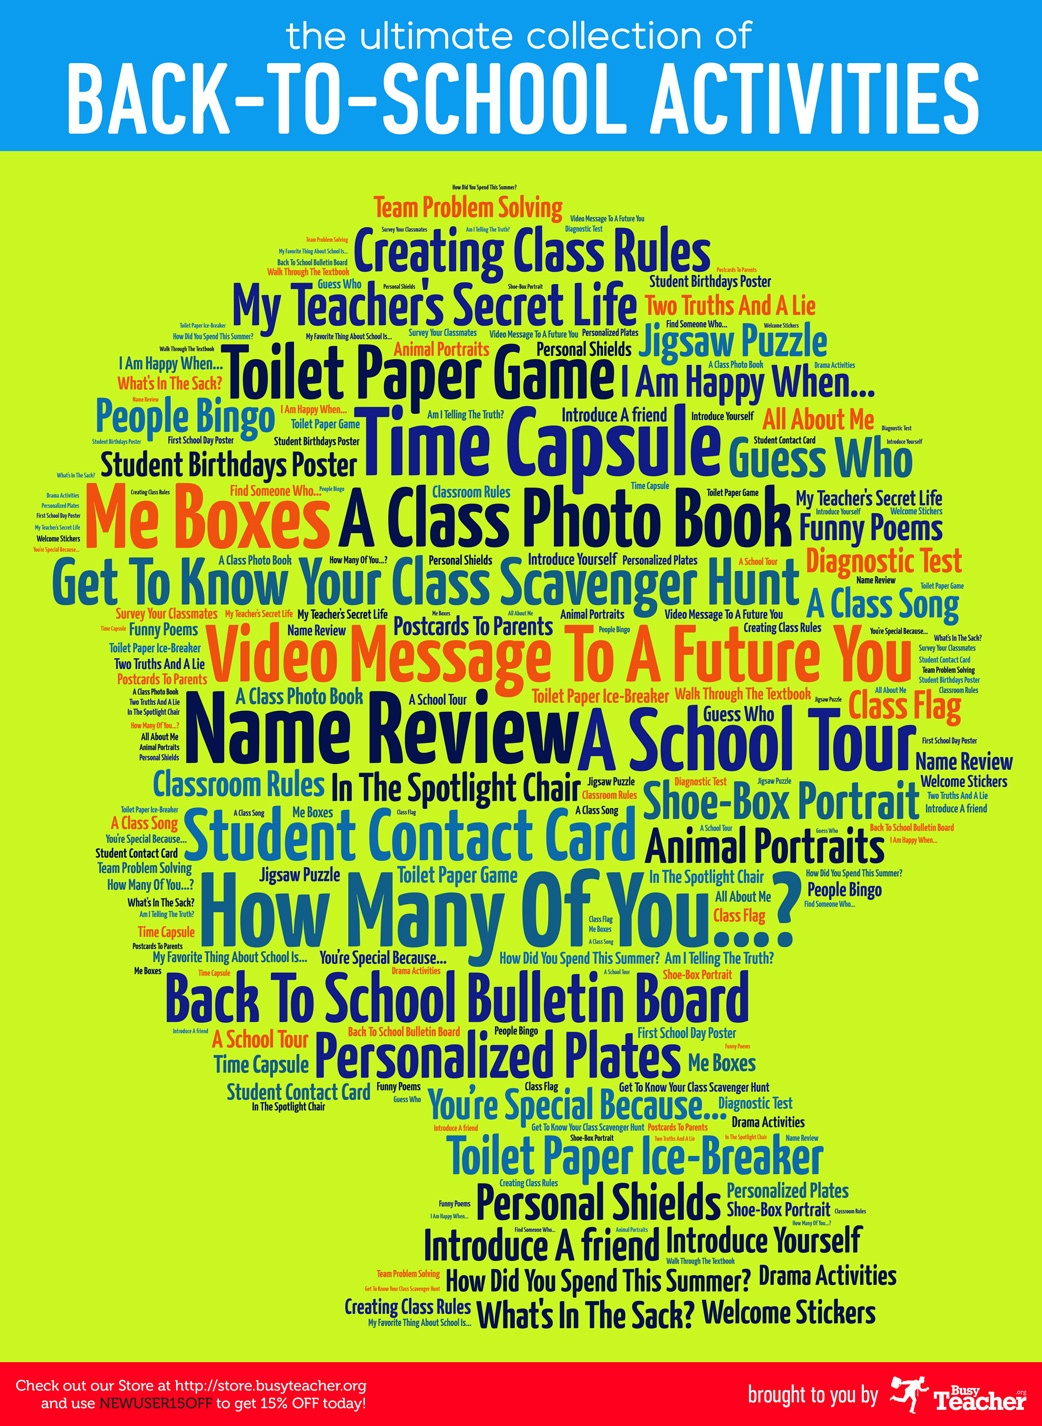 66 Free Classroom Posters - Free Printable Posters For Teachers